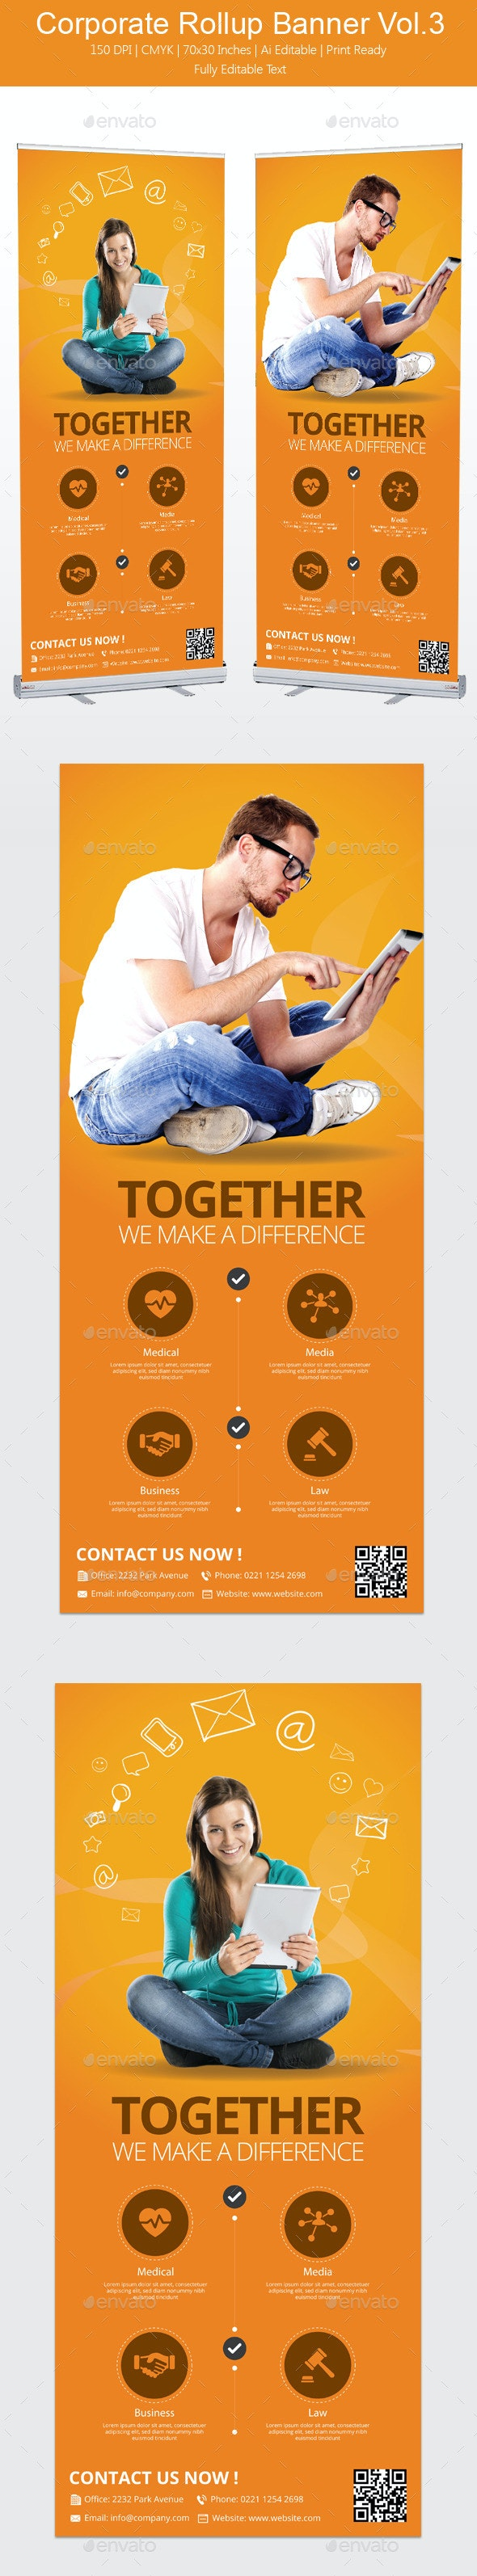 Corporate Rollup Banner Vol3 - Print Templates